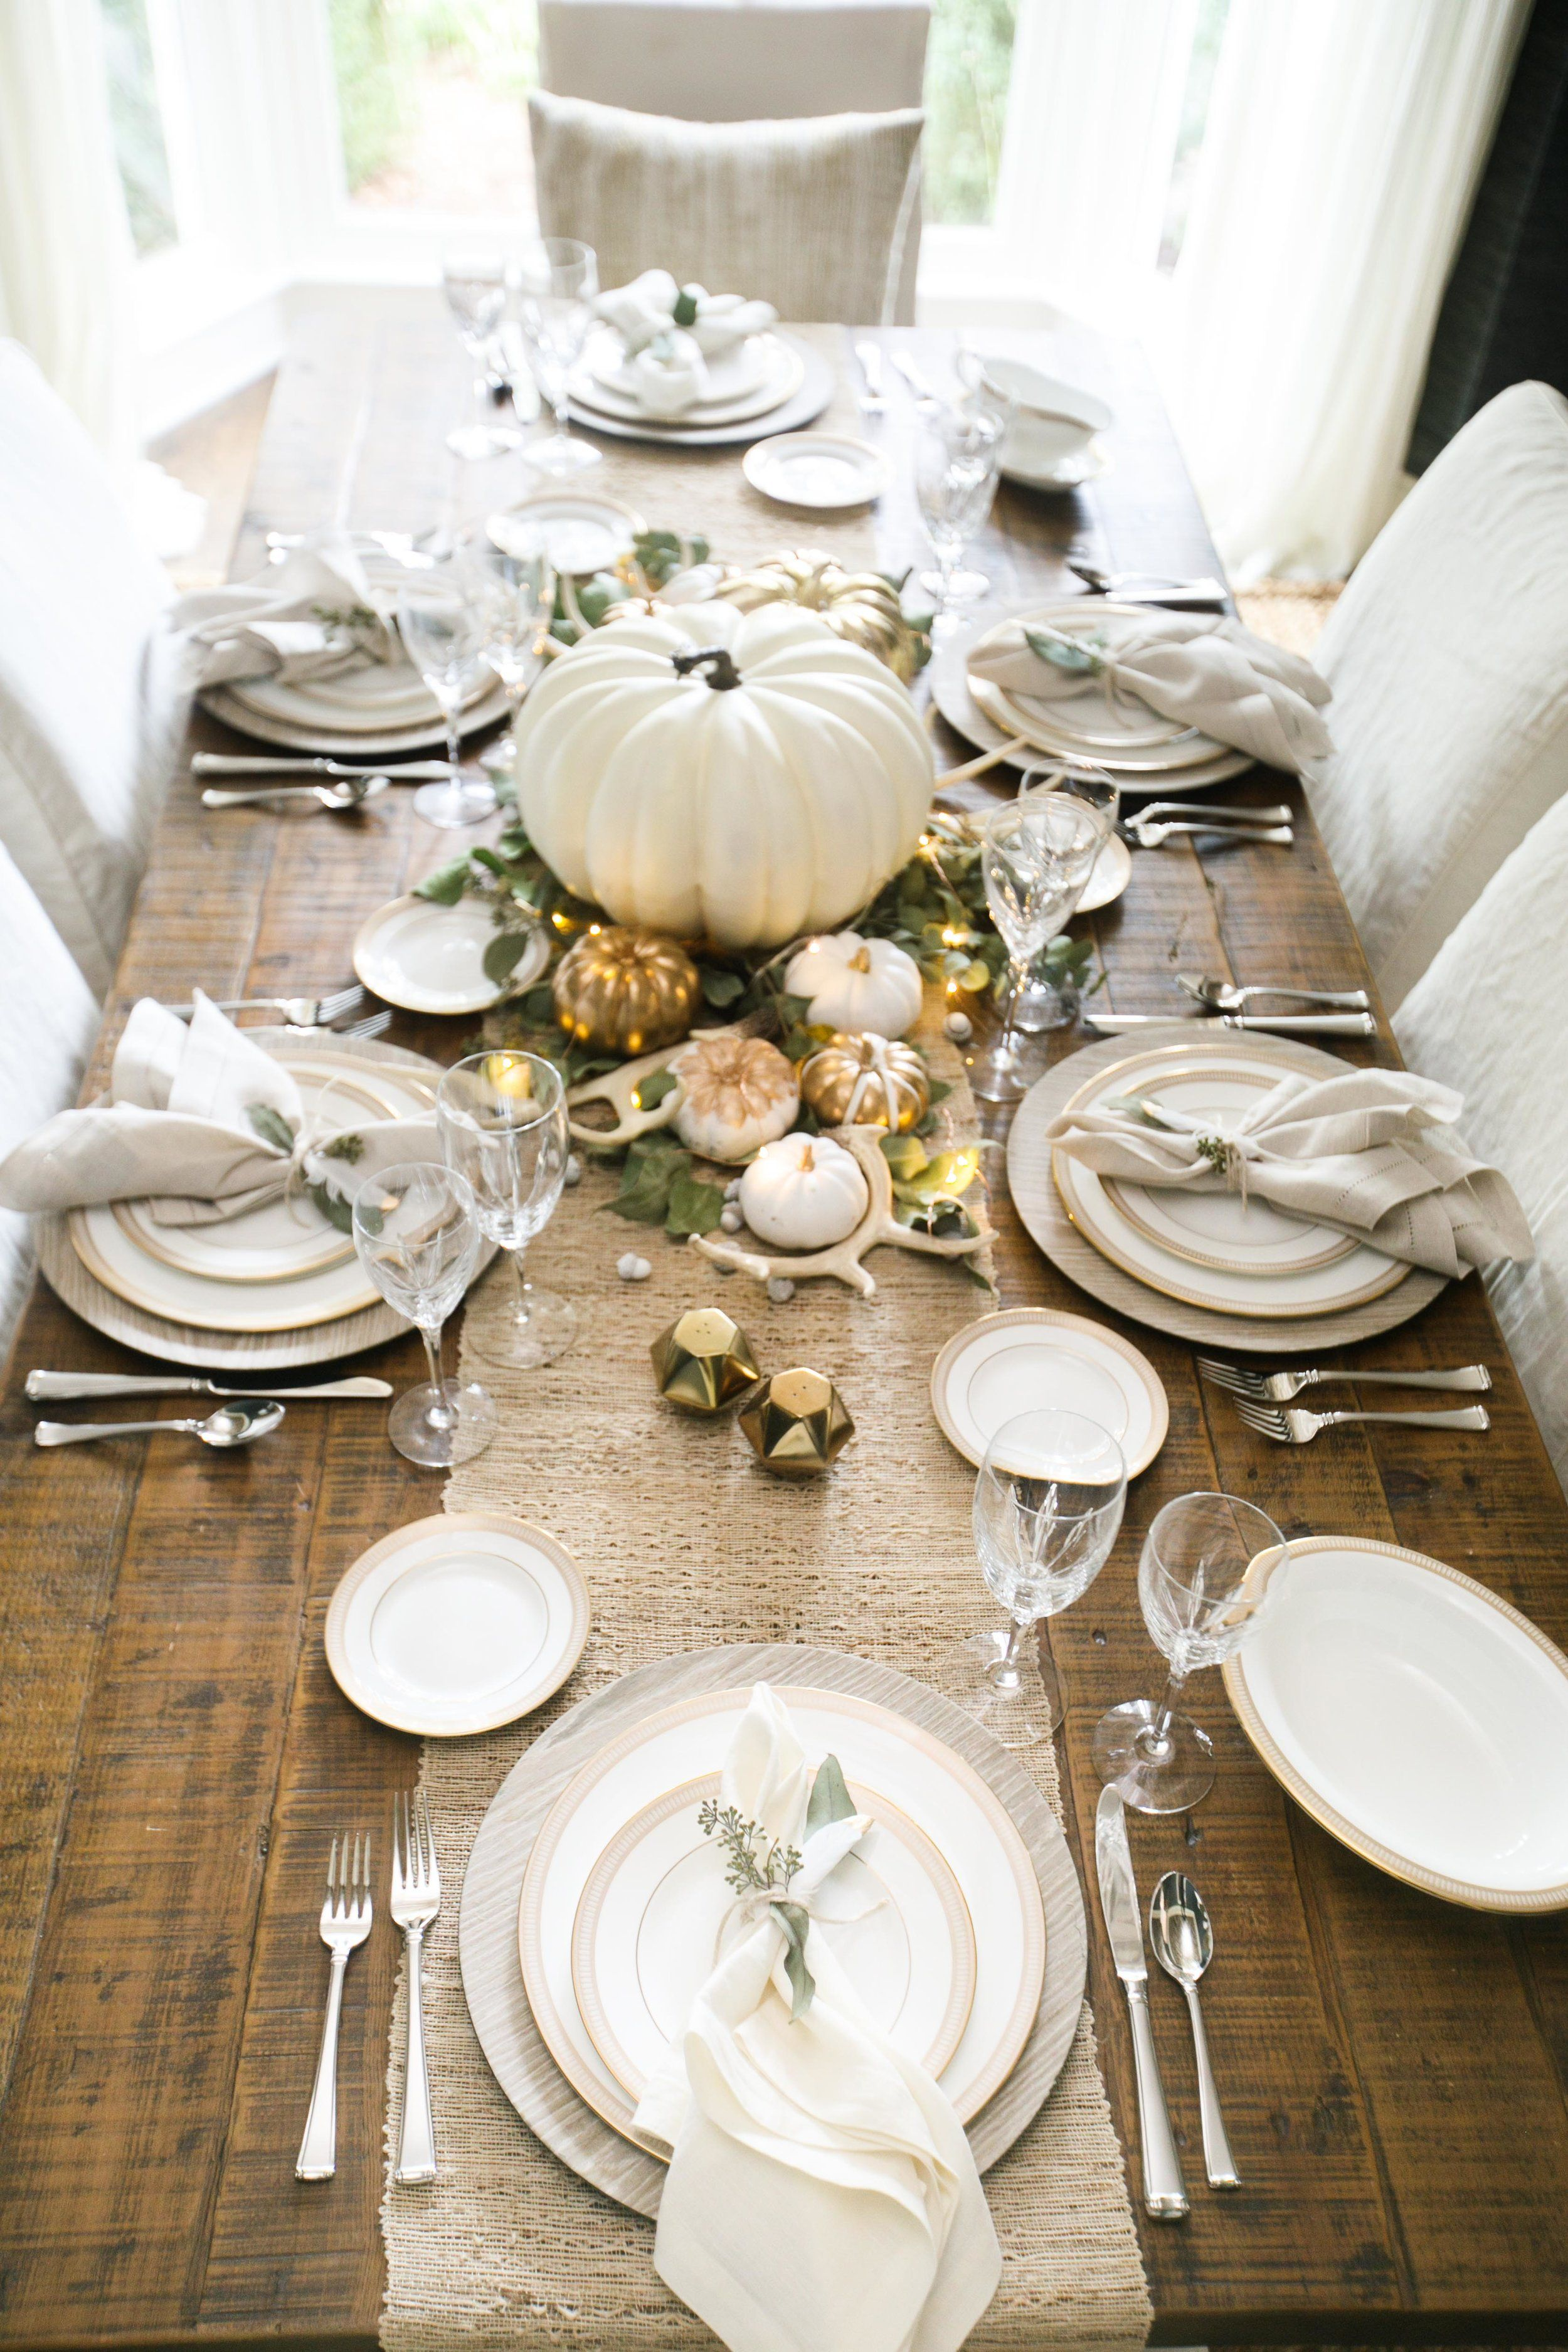 This Is An Amazing Thanksgiving Tablescape That You Can Totally